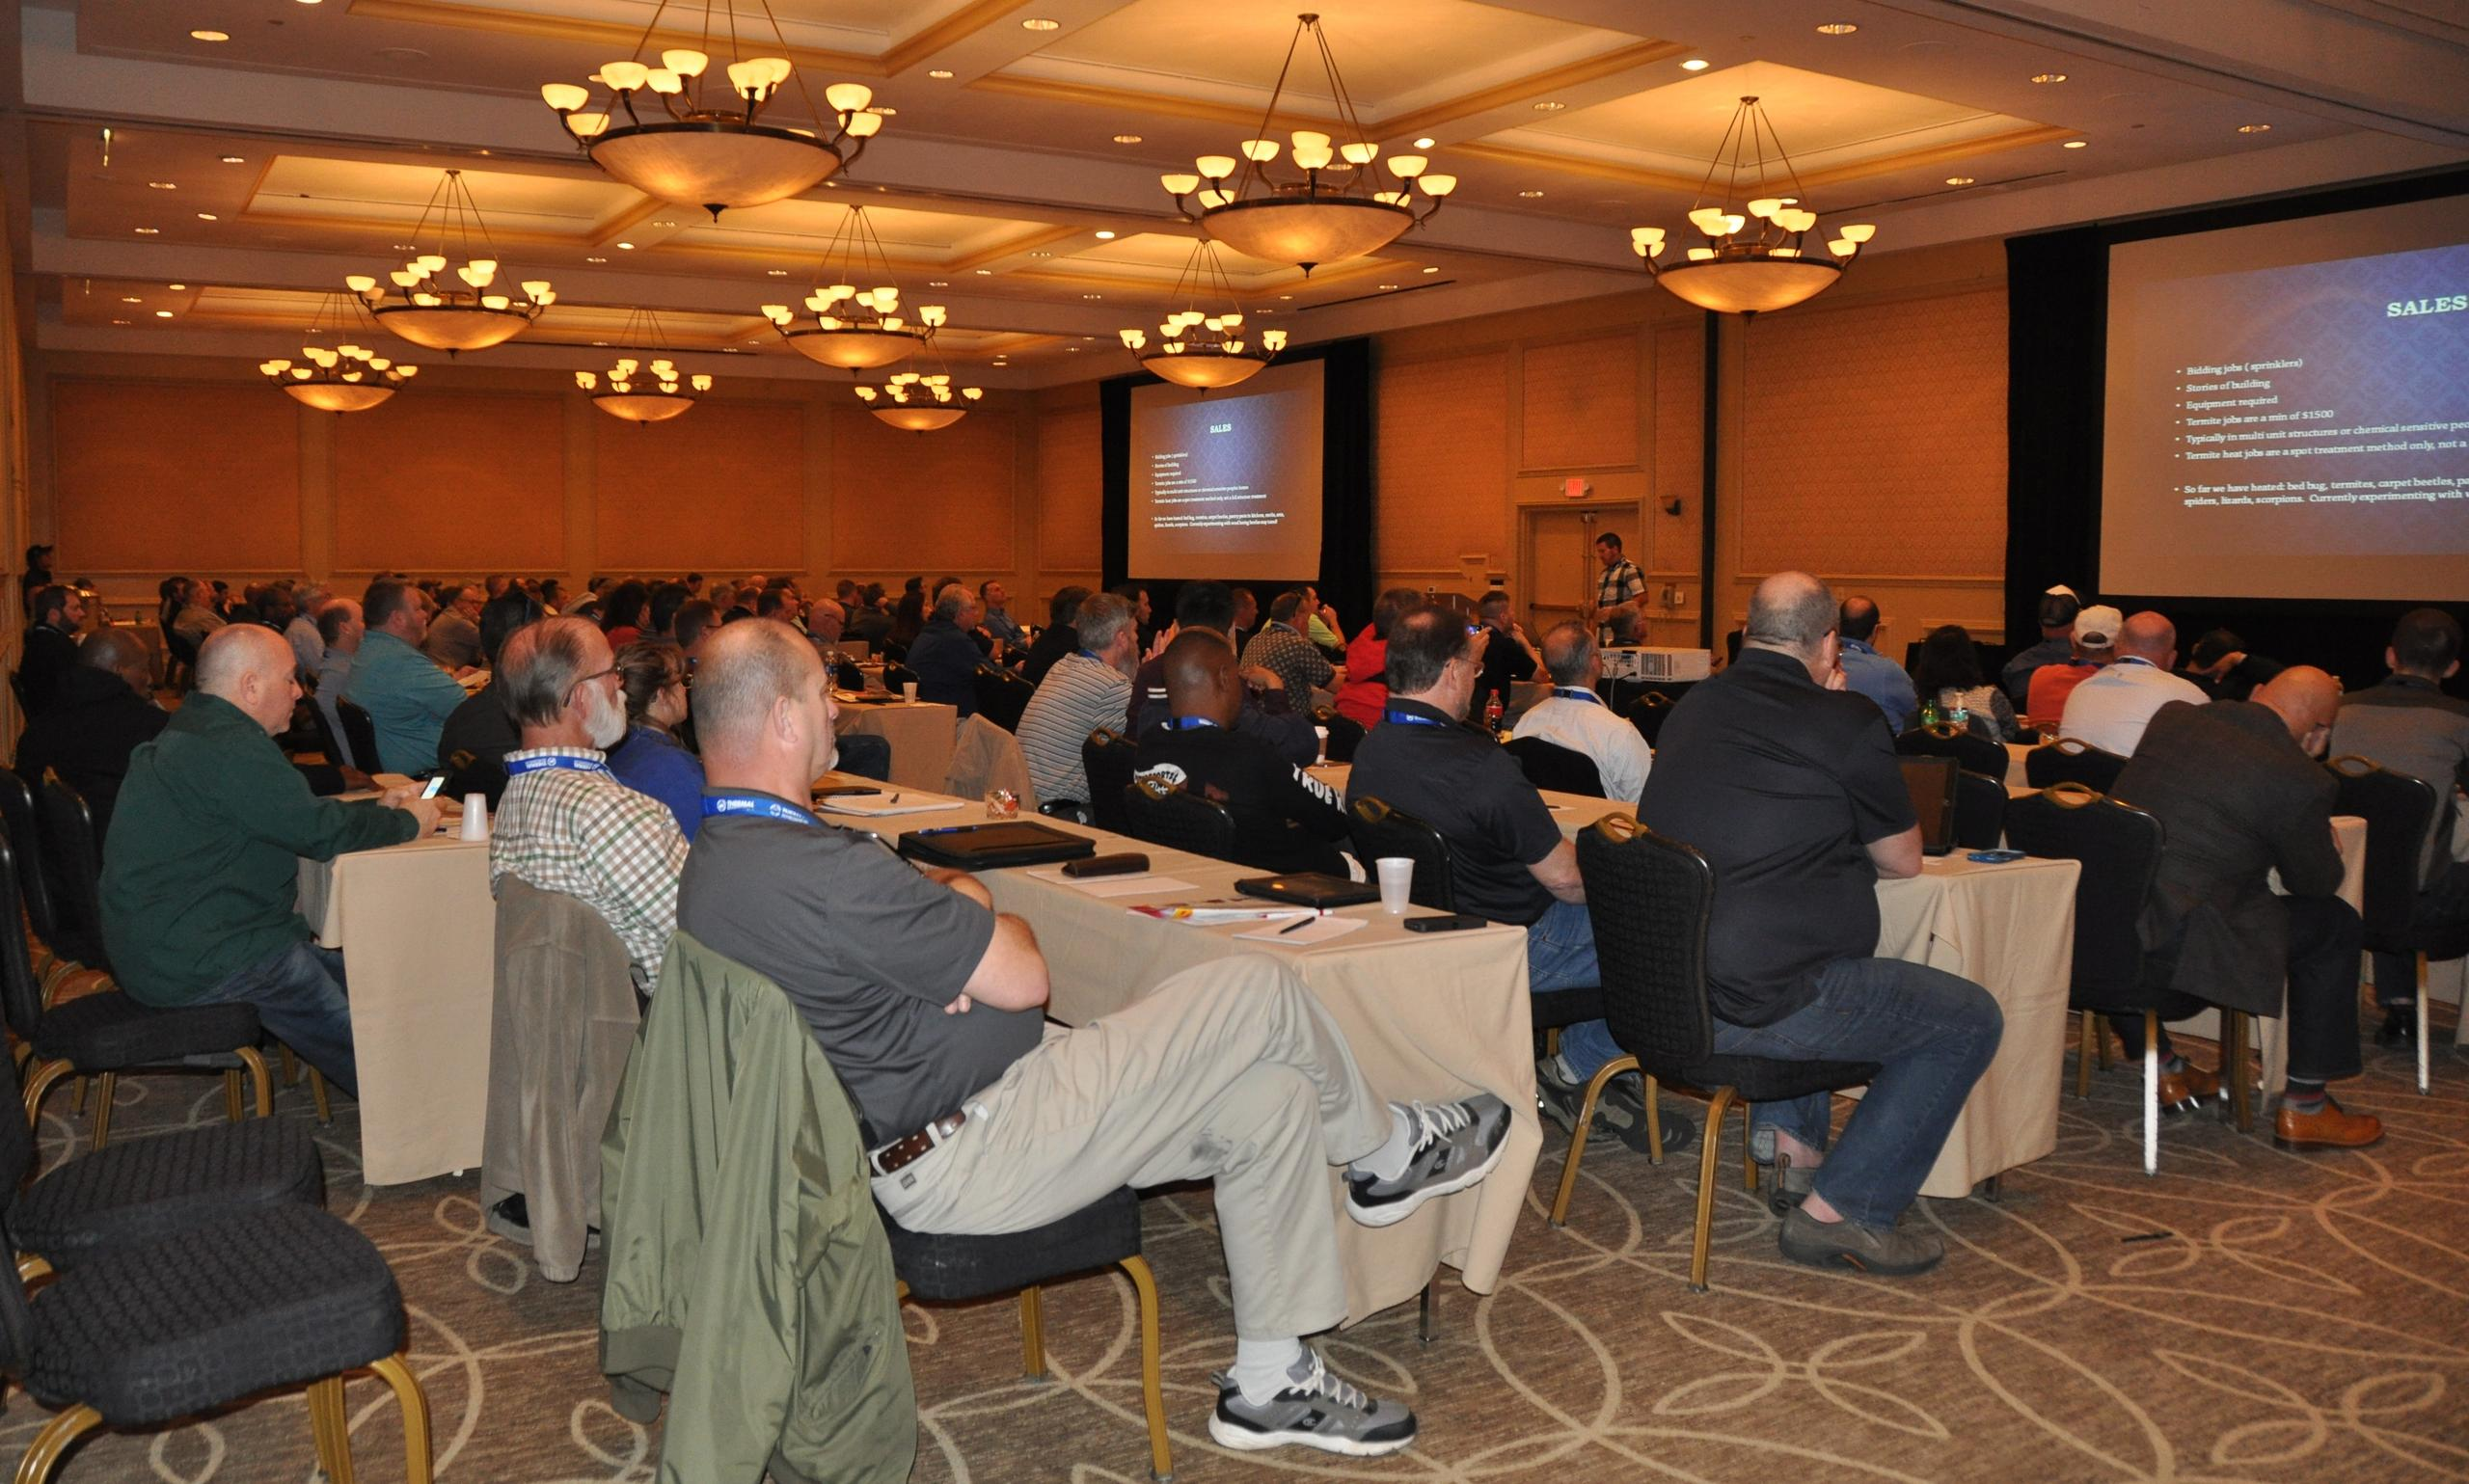 People sit and listen during Thermal Remediation's annual Bed Bug National Conference.